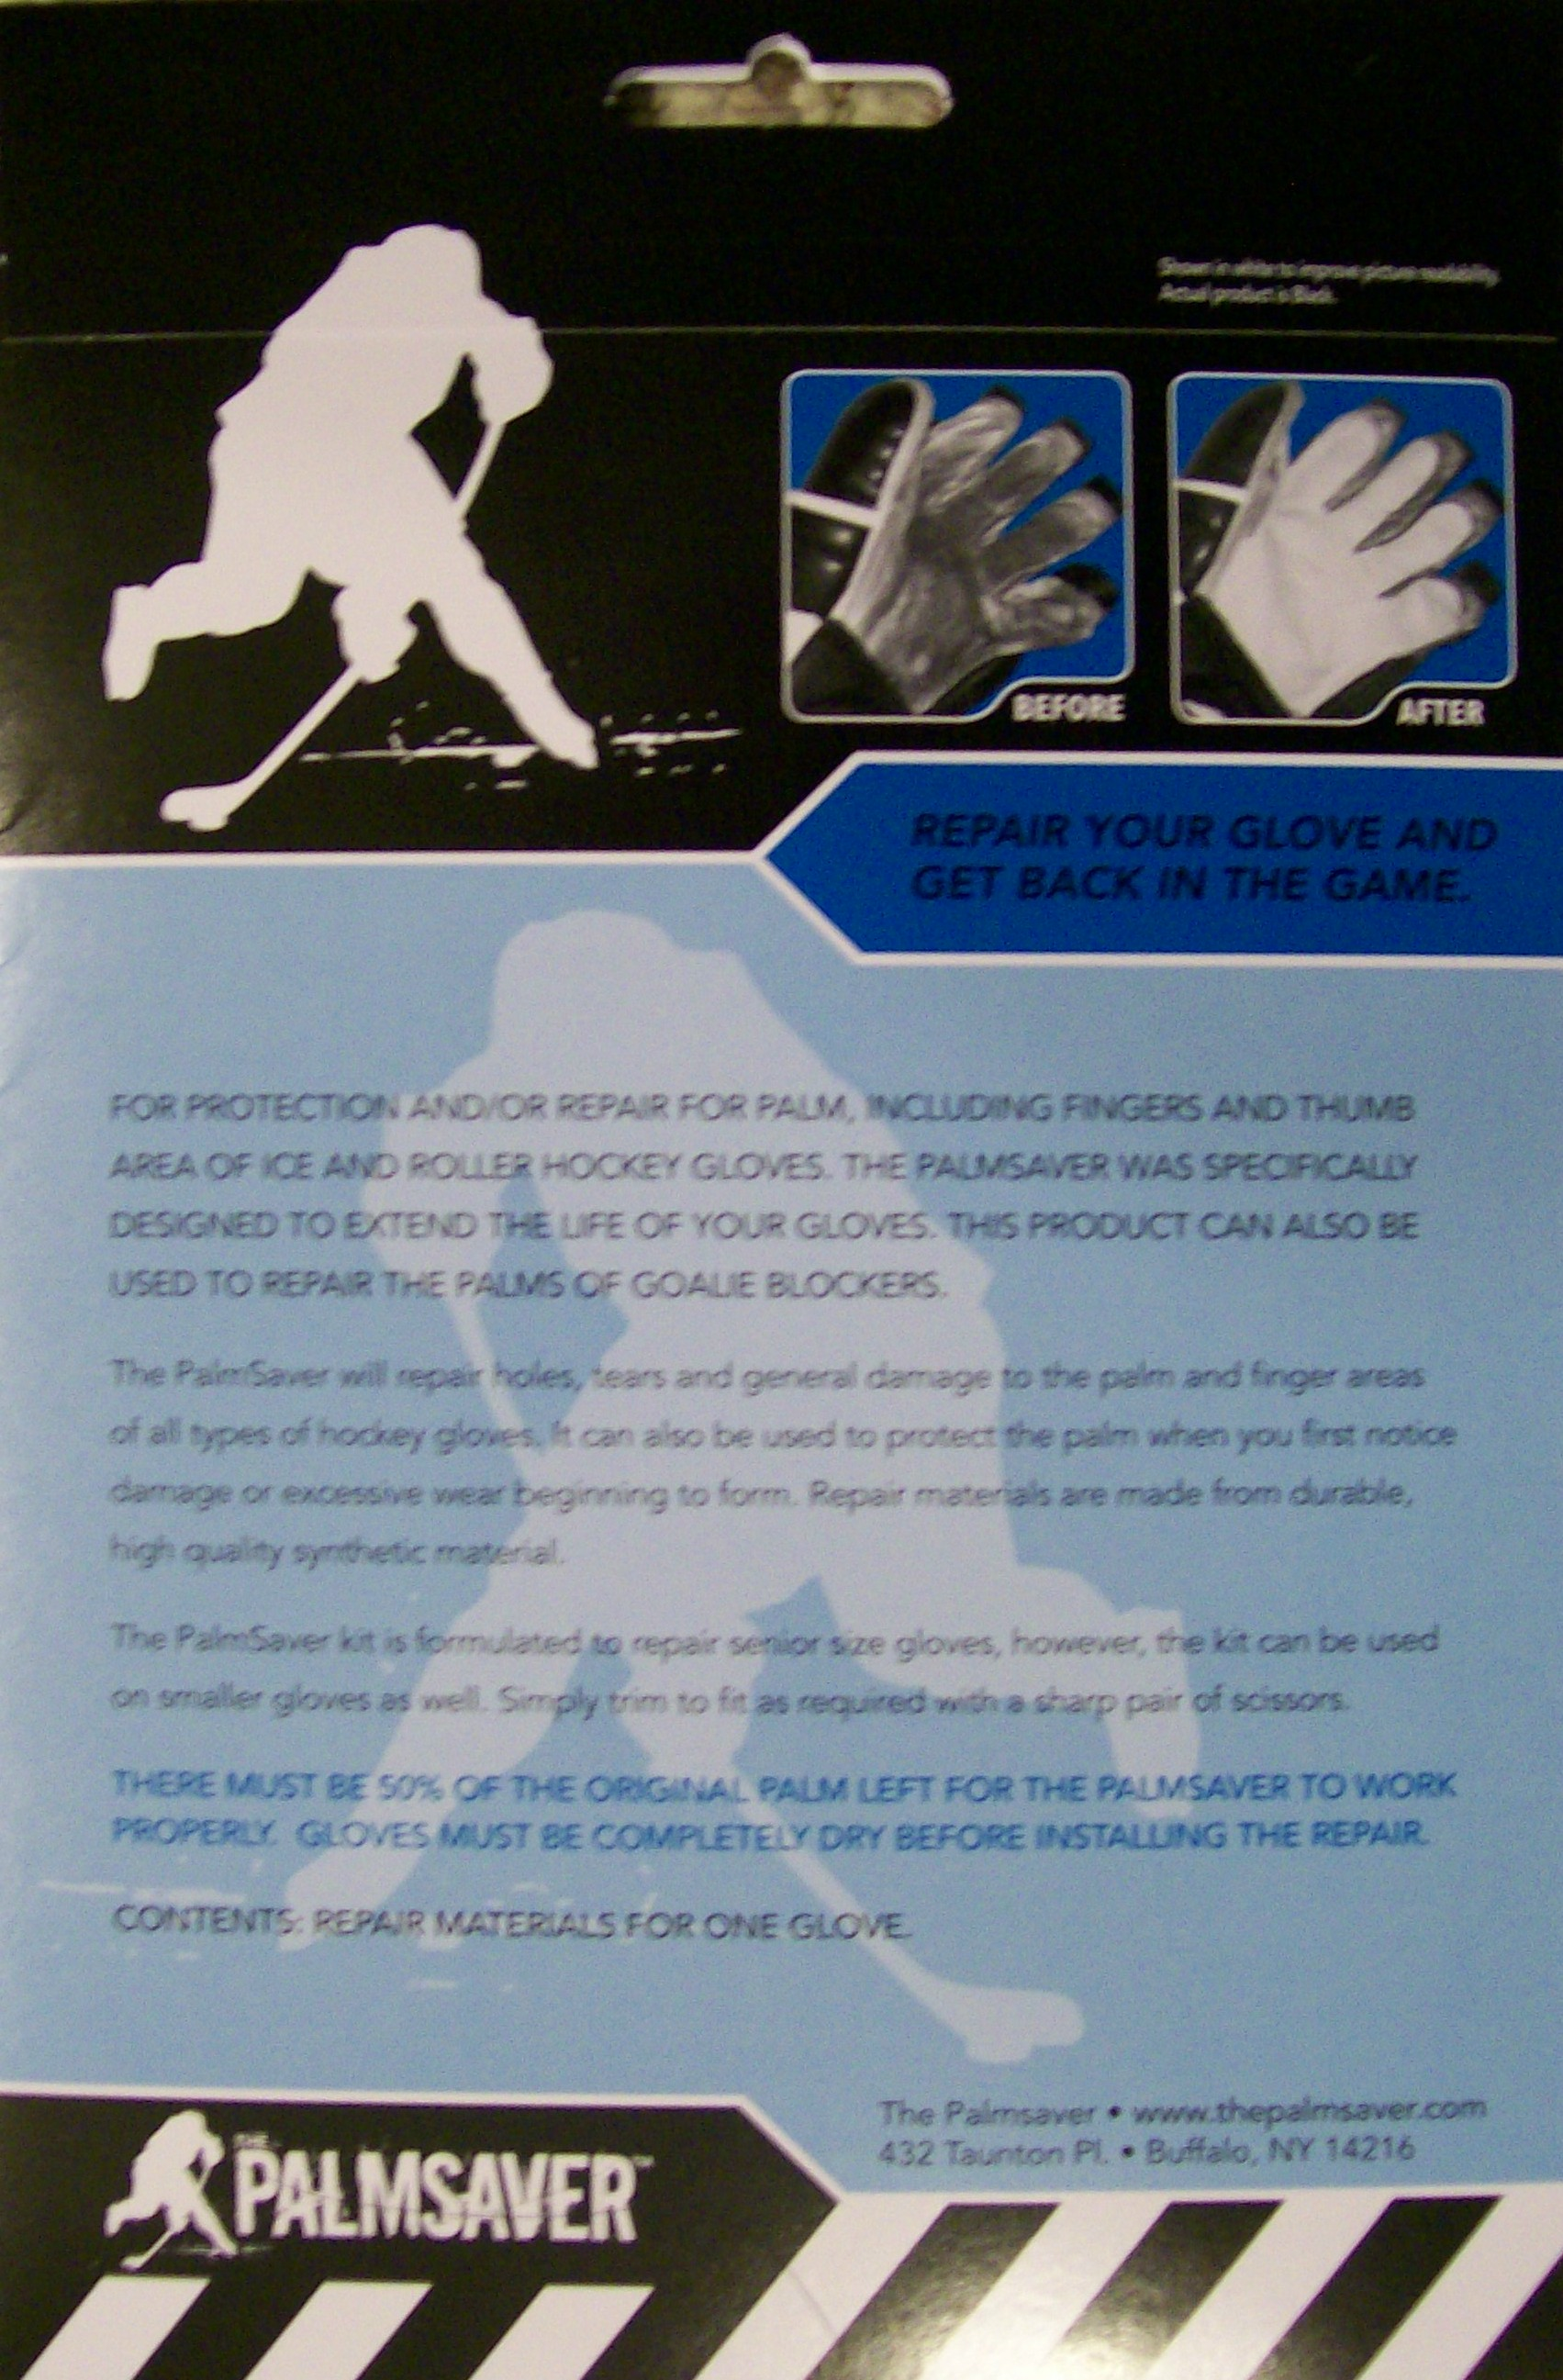 Back of The Palmsaver package